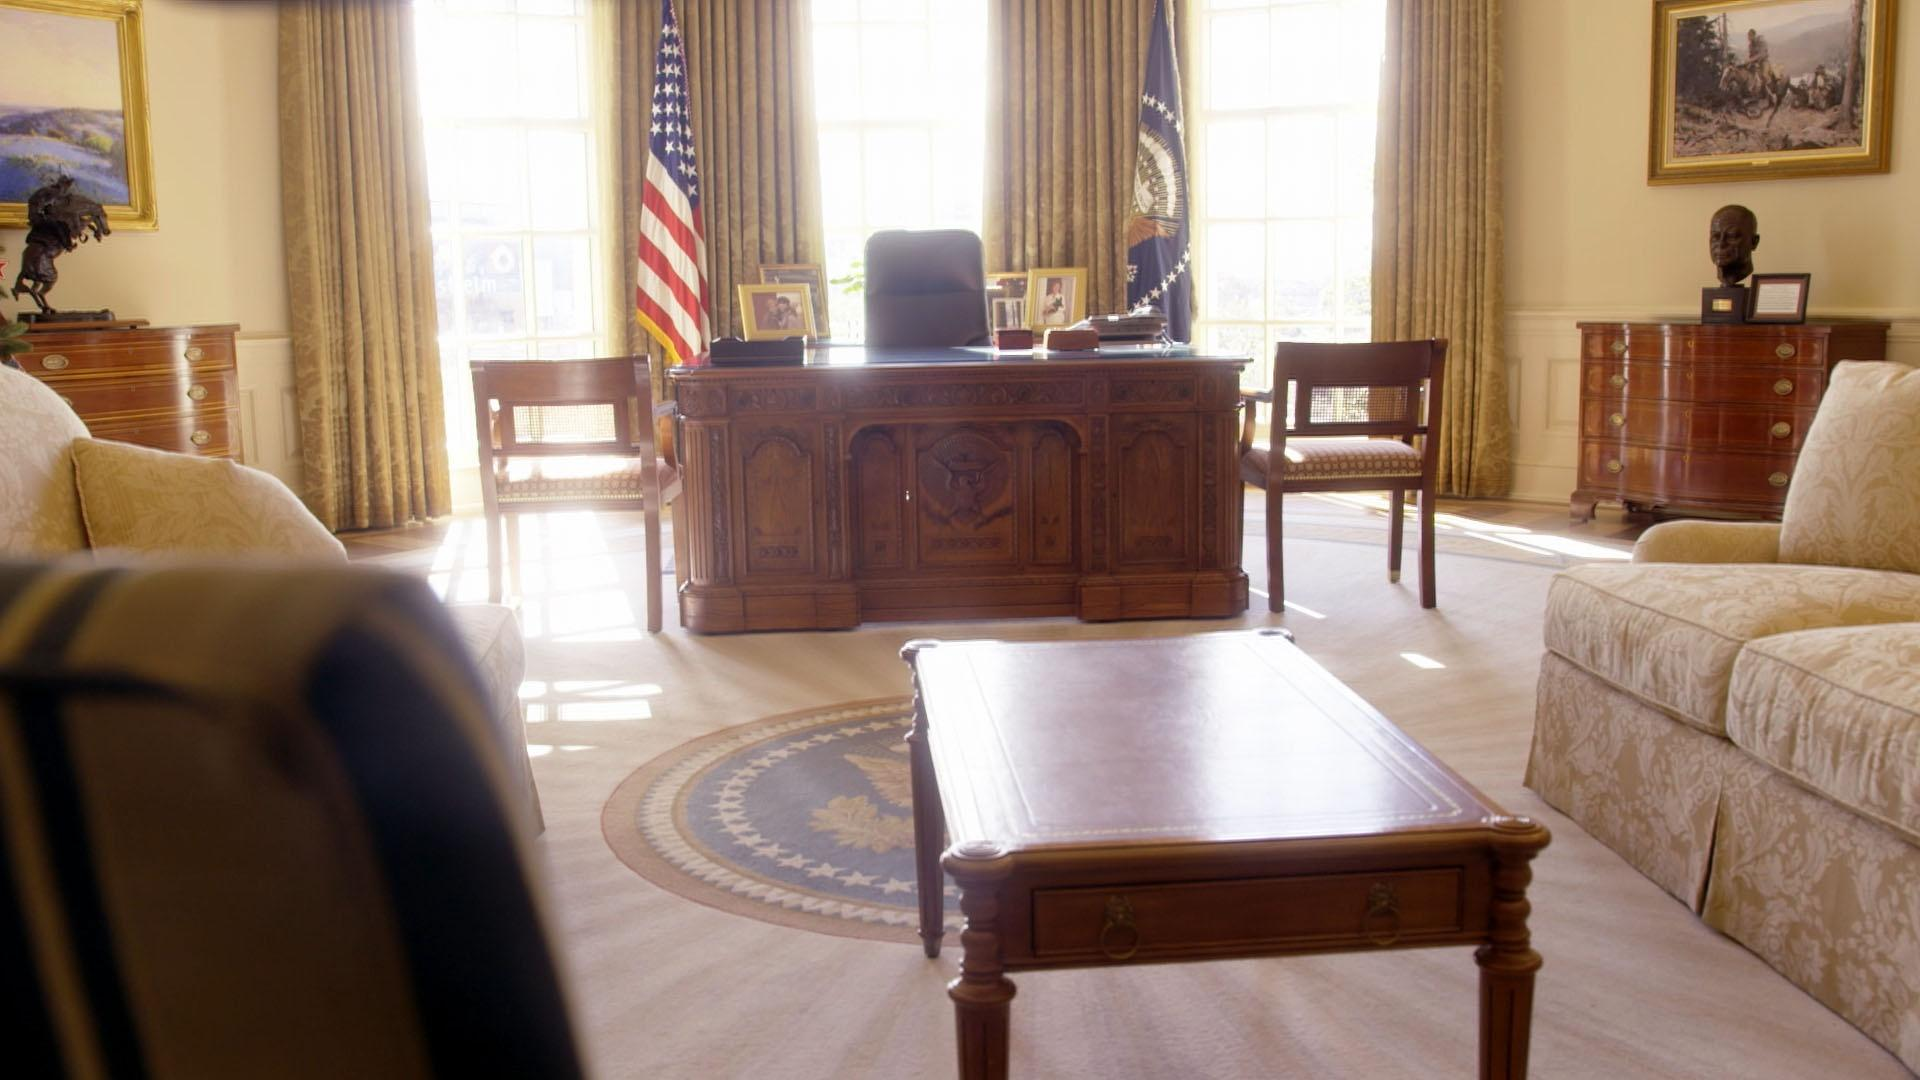 The White House: Inside Story: The Oval Office